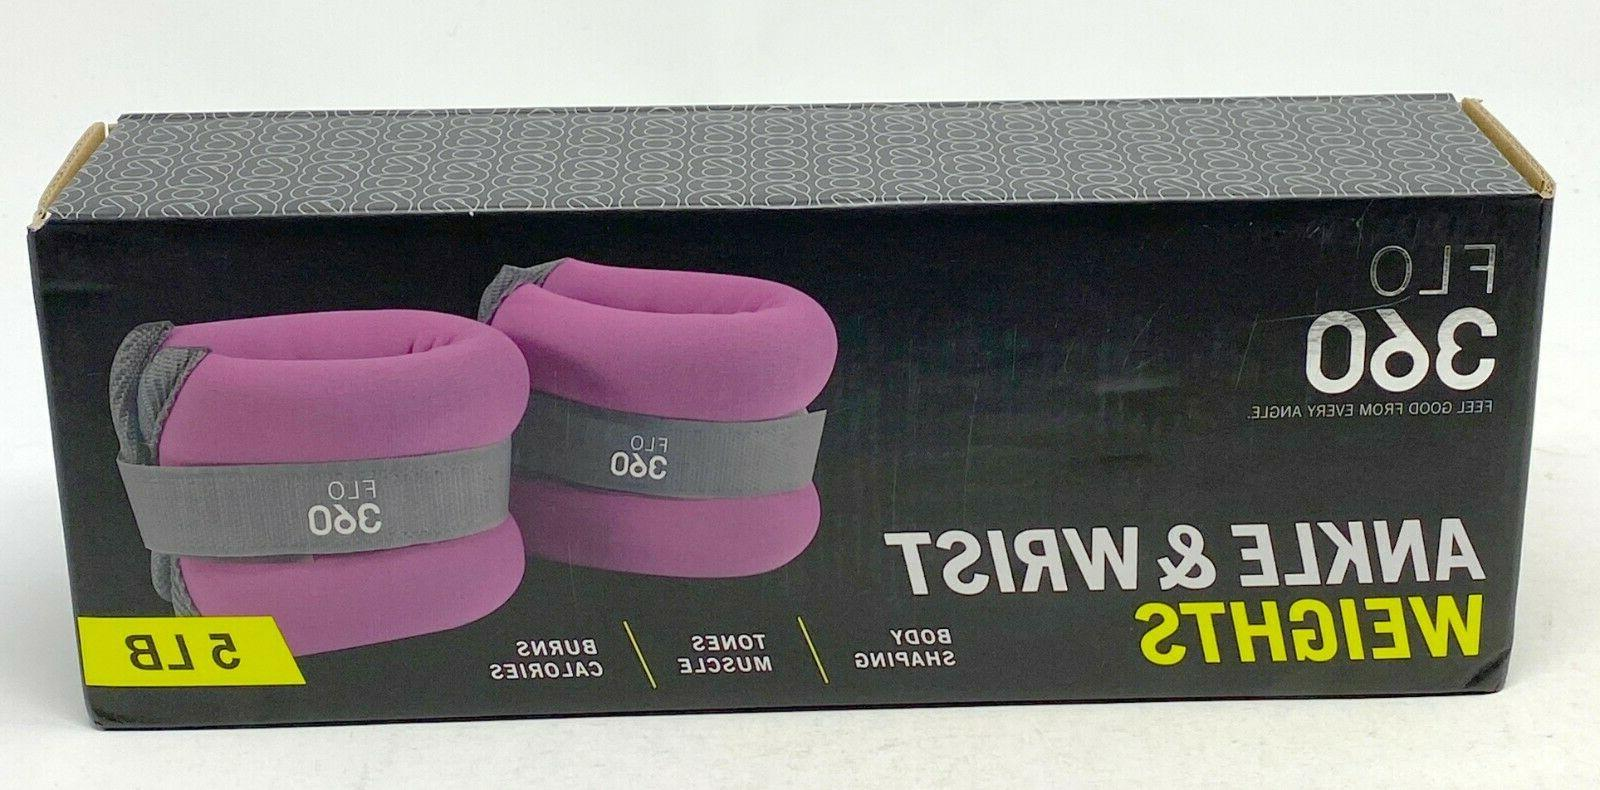 flo 360 ankle and wrist weights 5lb